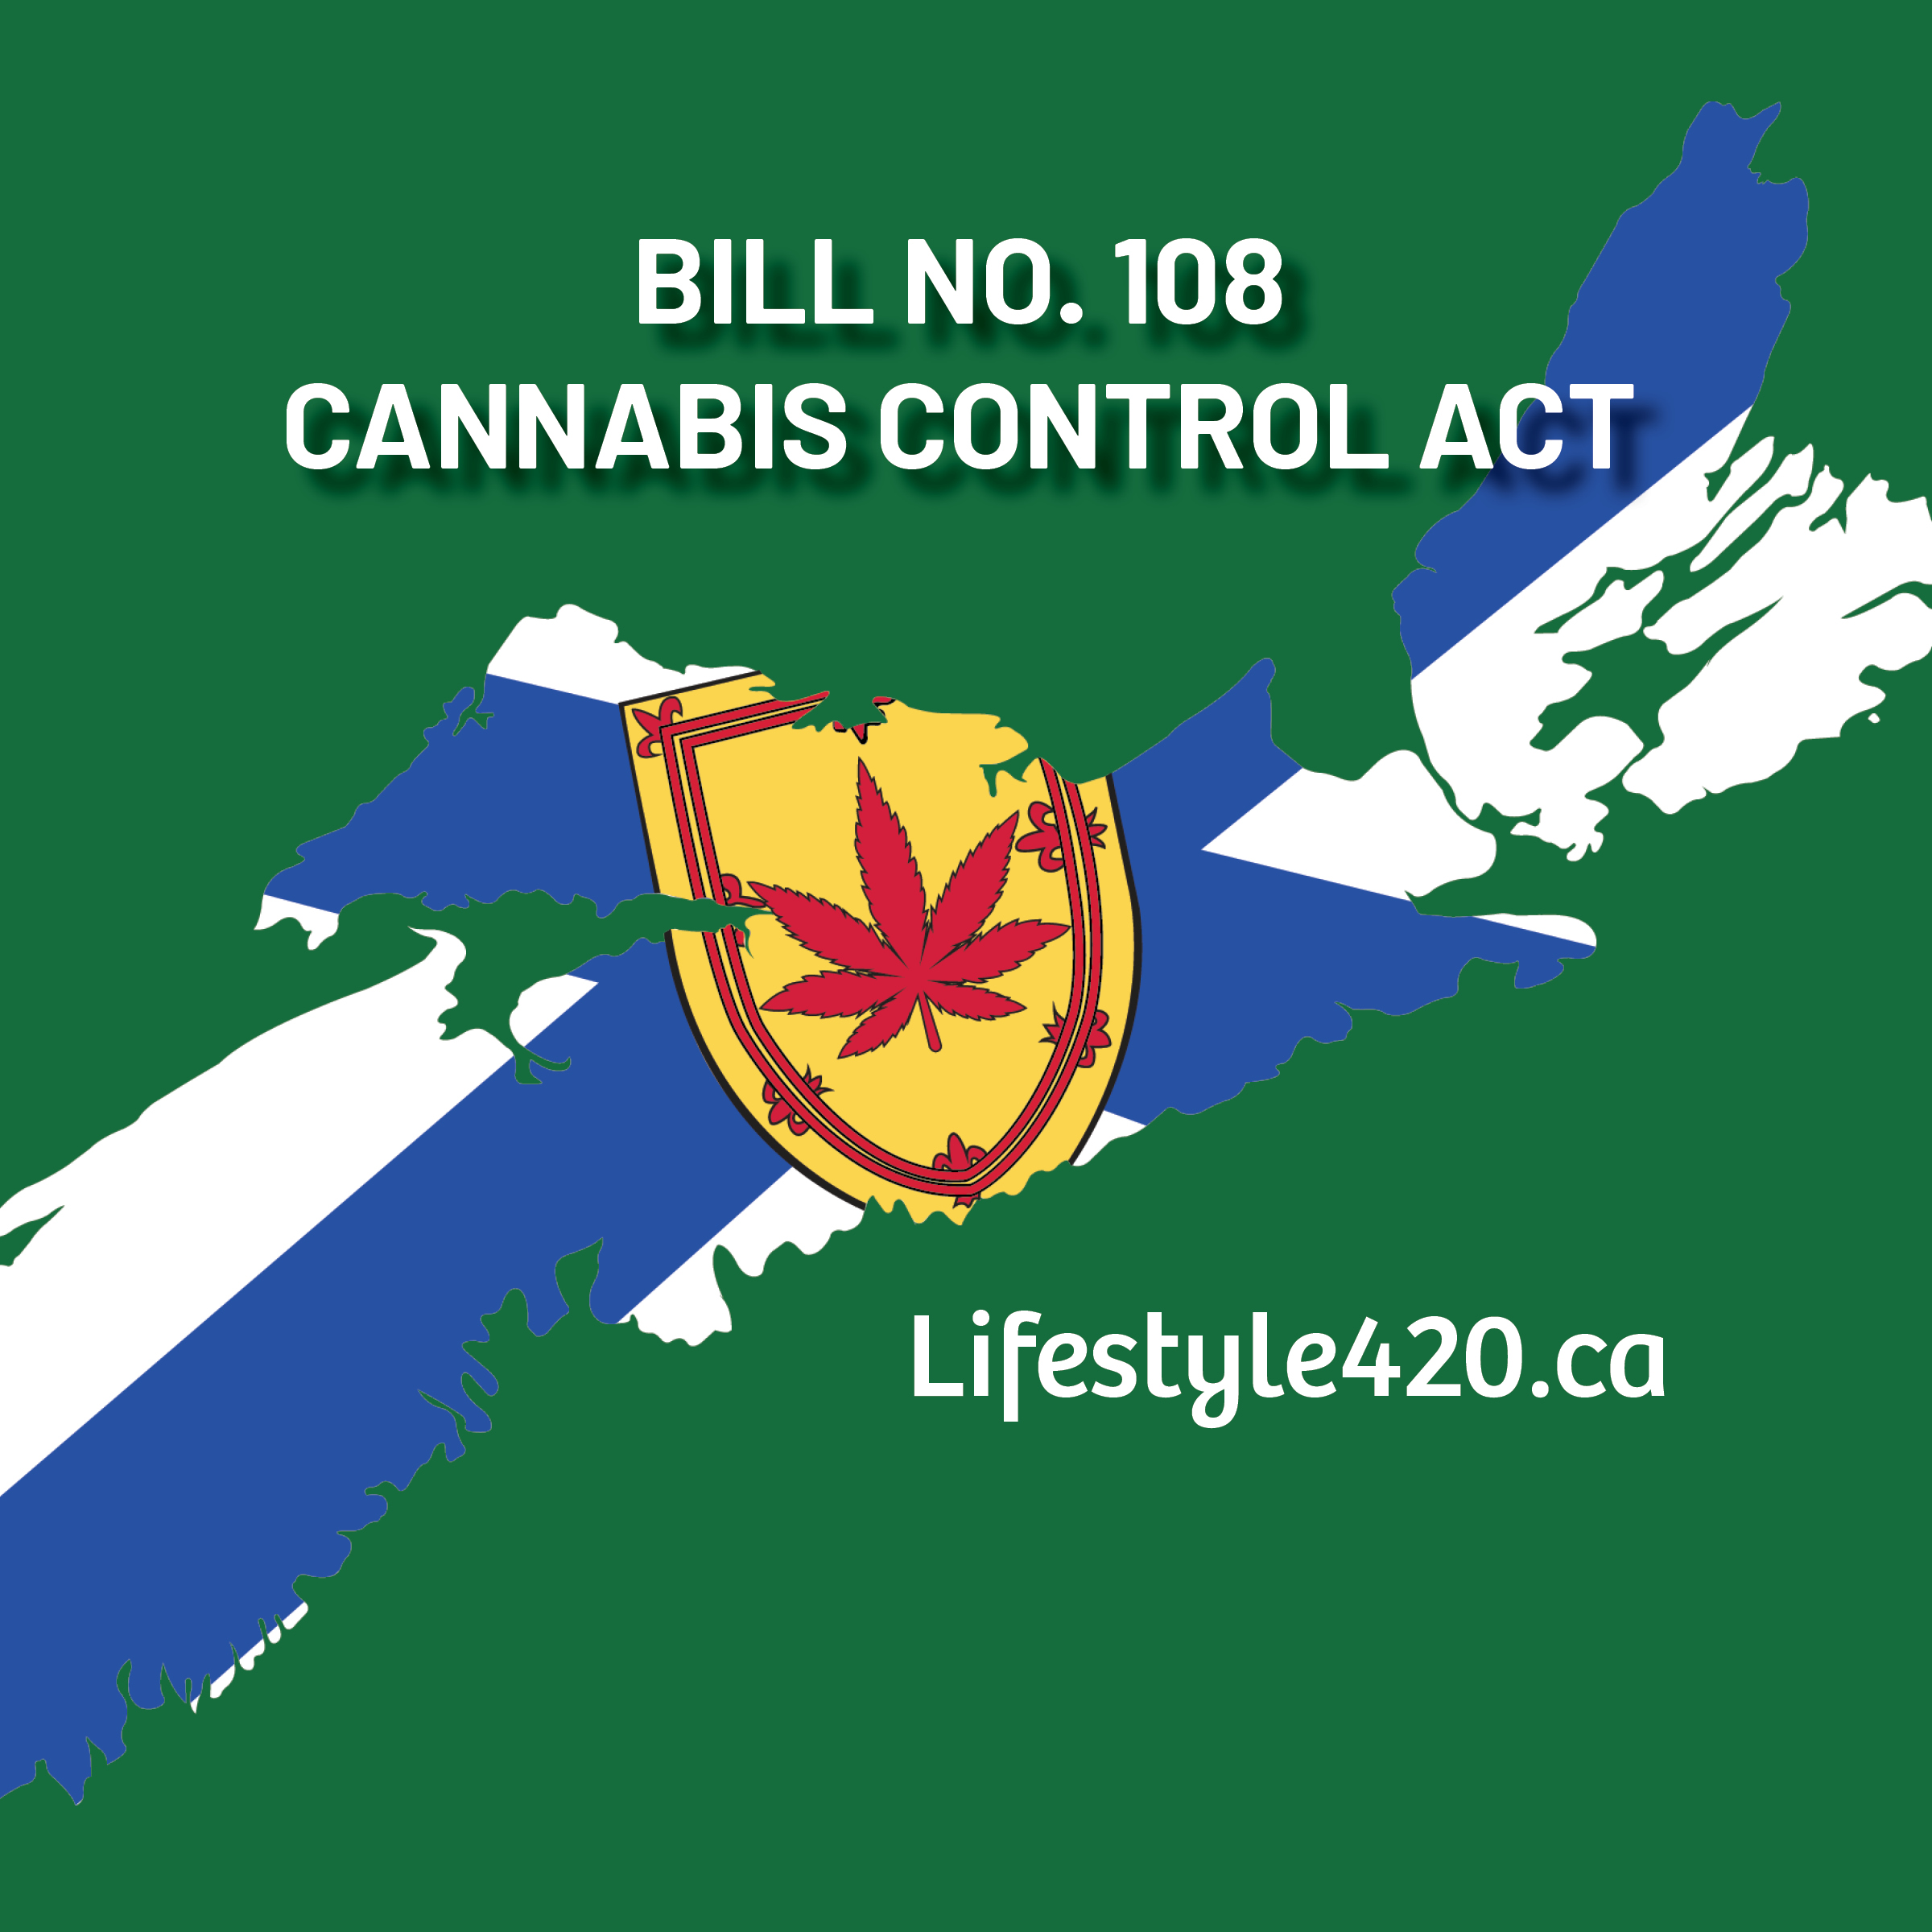 New Cannabis Control Act